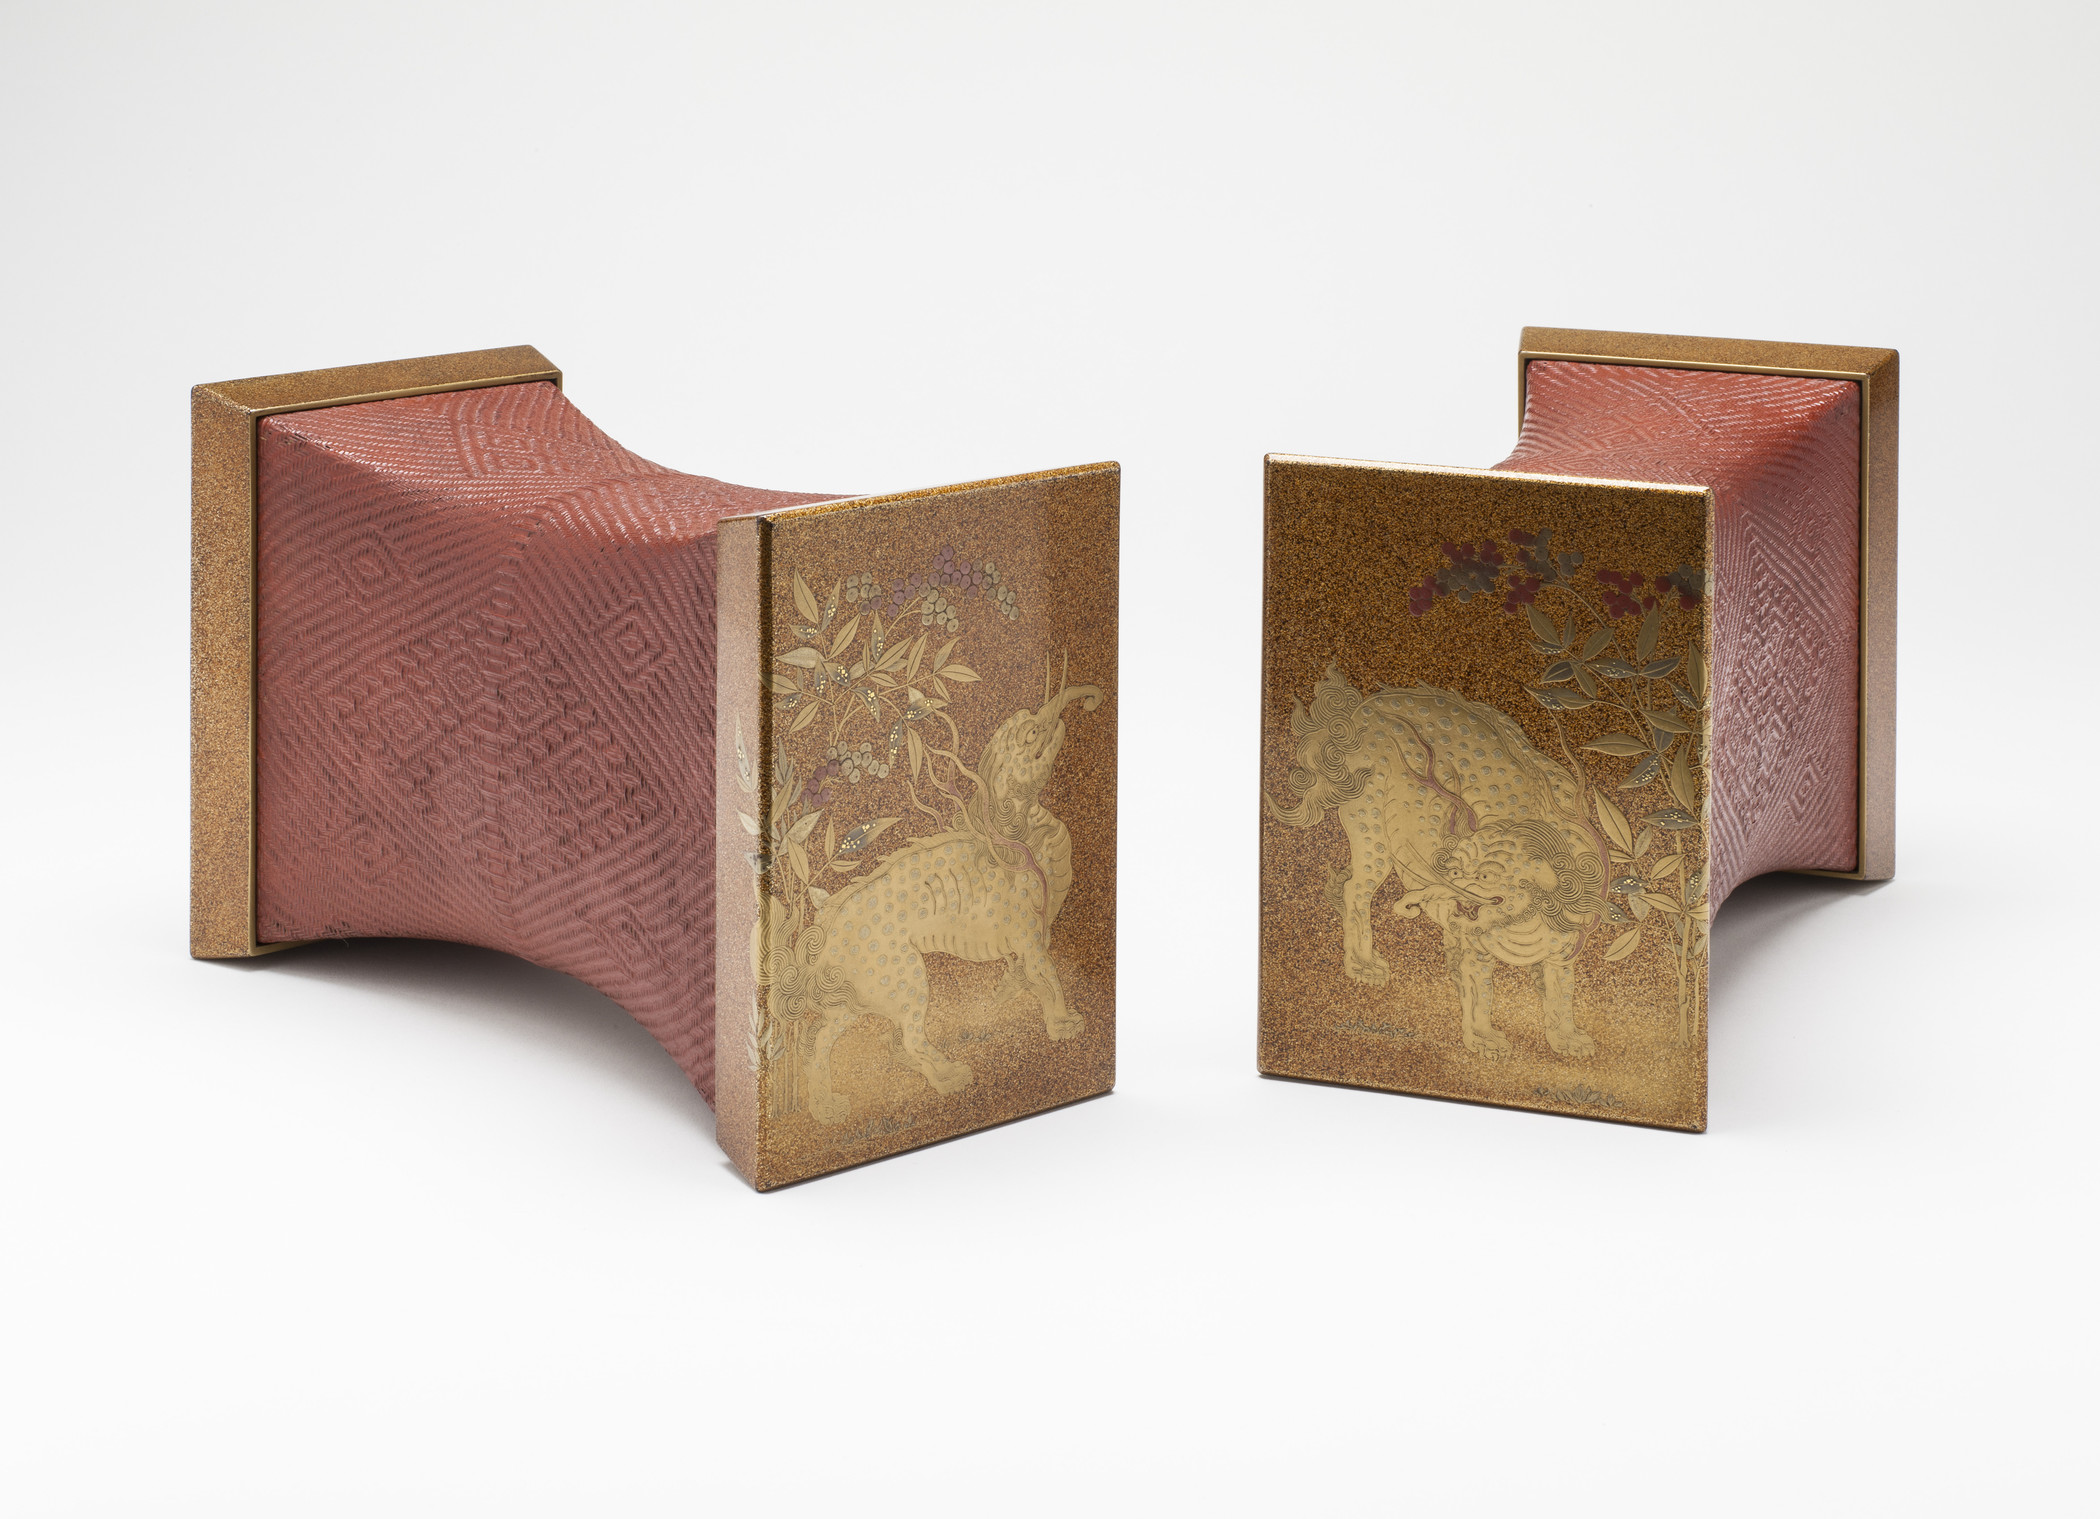 Pair of Pillows with Baku Design, Edo period, 1615–1868, c. 1800, Los Angeles County Museum of Art, gift of Sue Tsao, photo © Museum Associates/LACMA